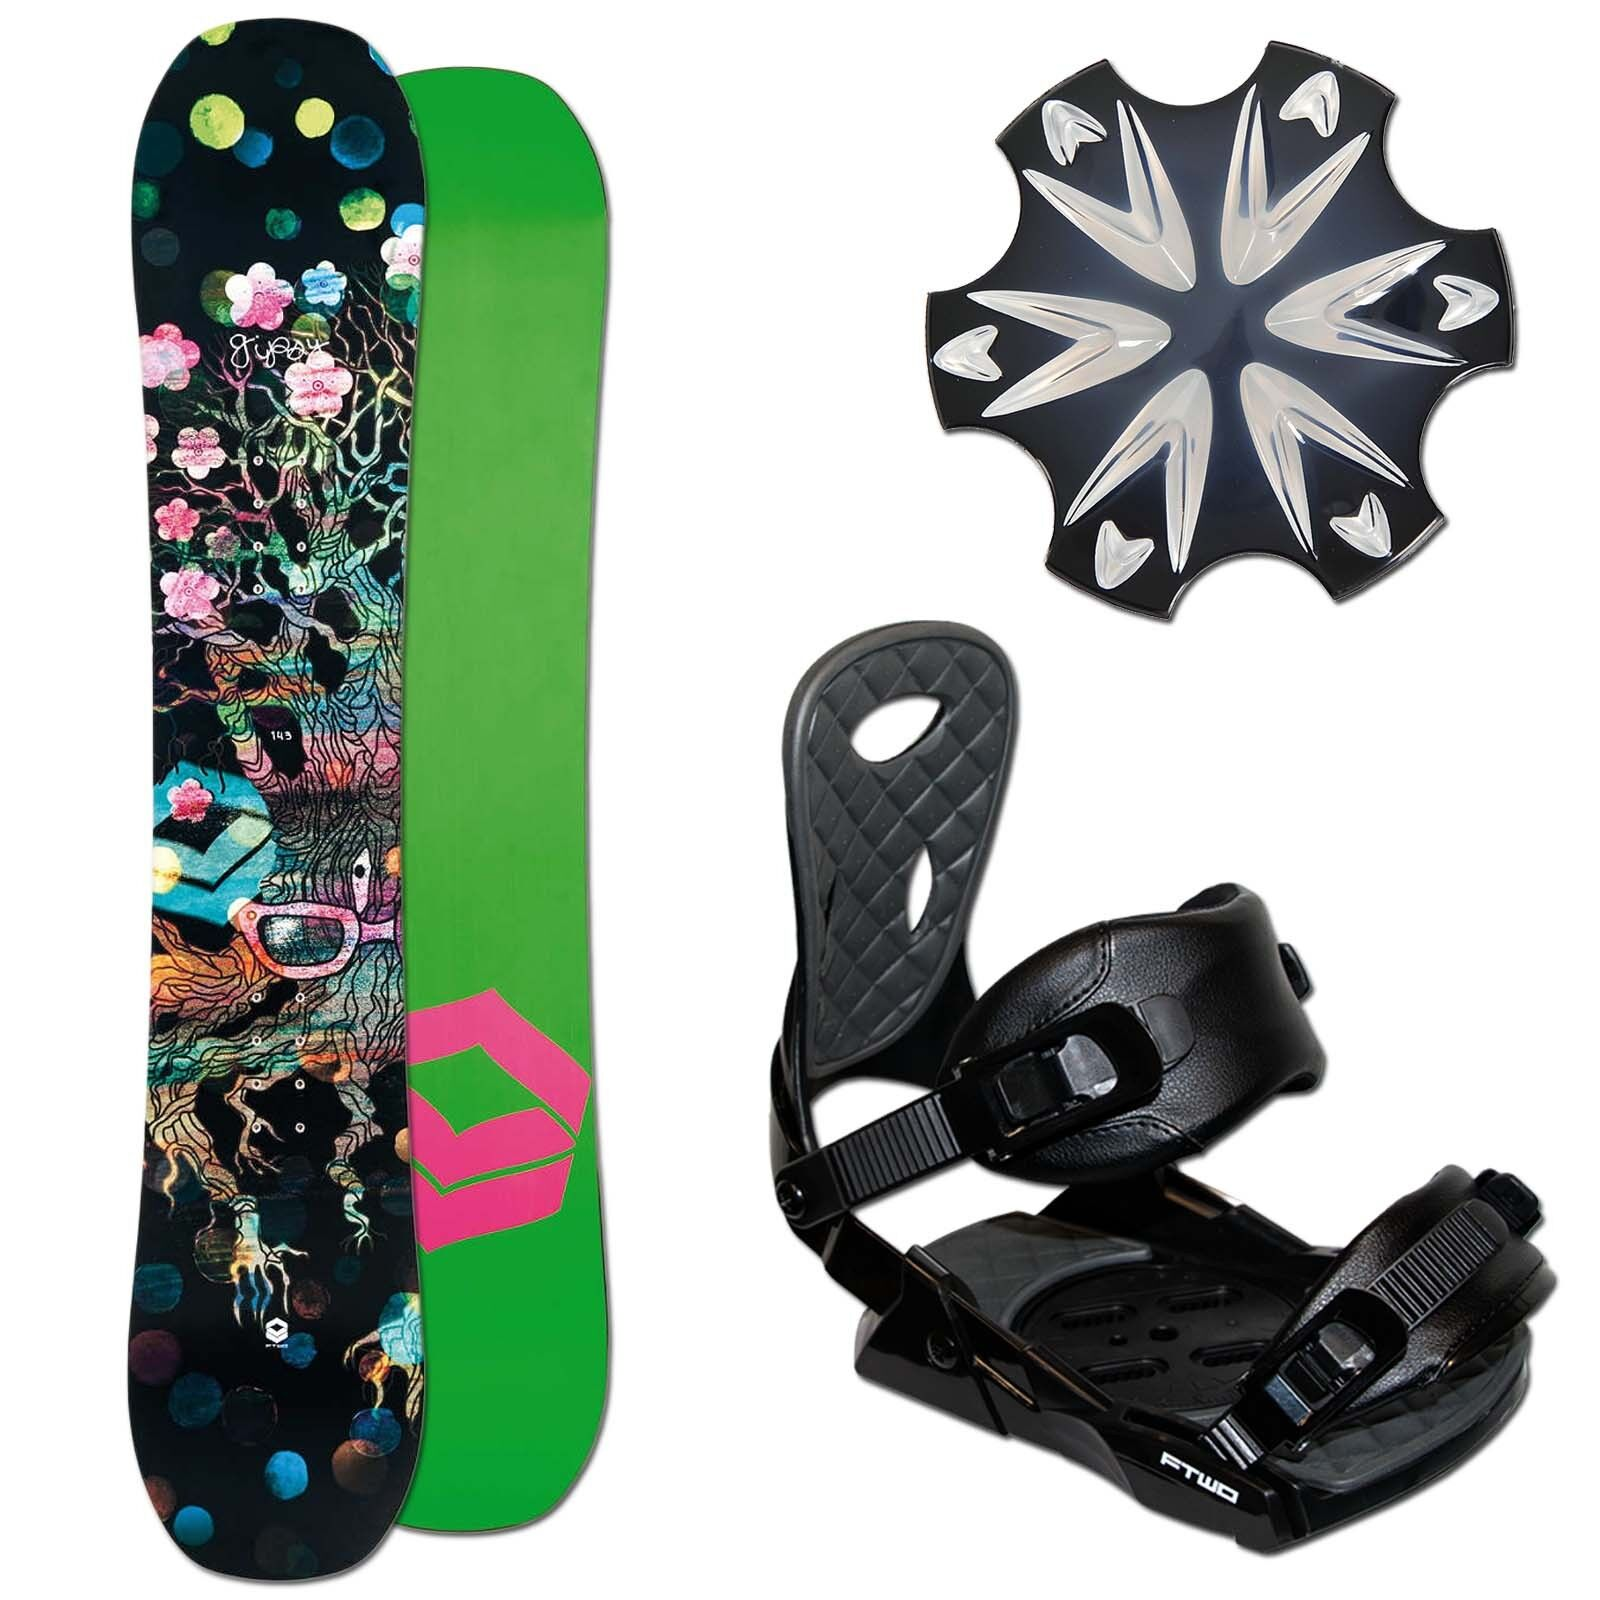 Ladies Freestyle Snowboard Ftwo Gipsy 152 cm + Team Binding SIZE M + Pad